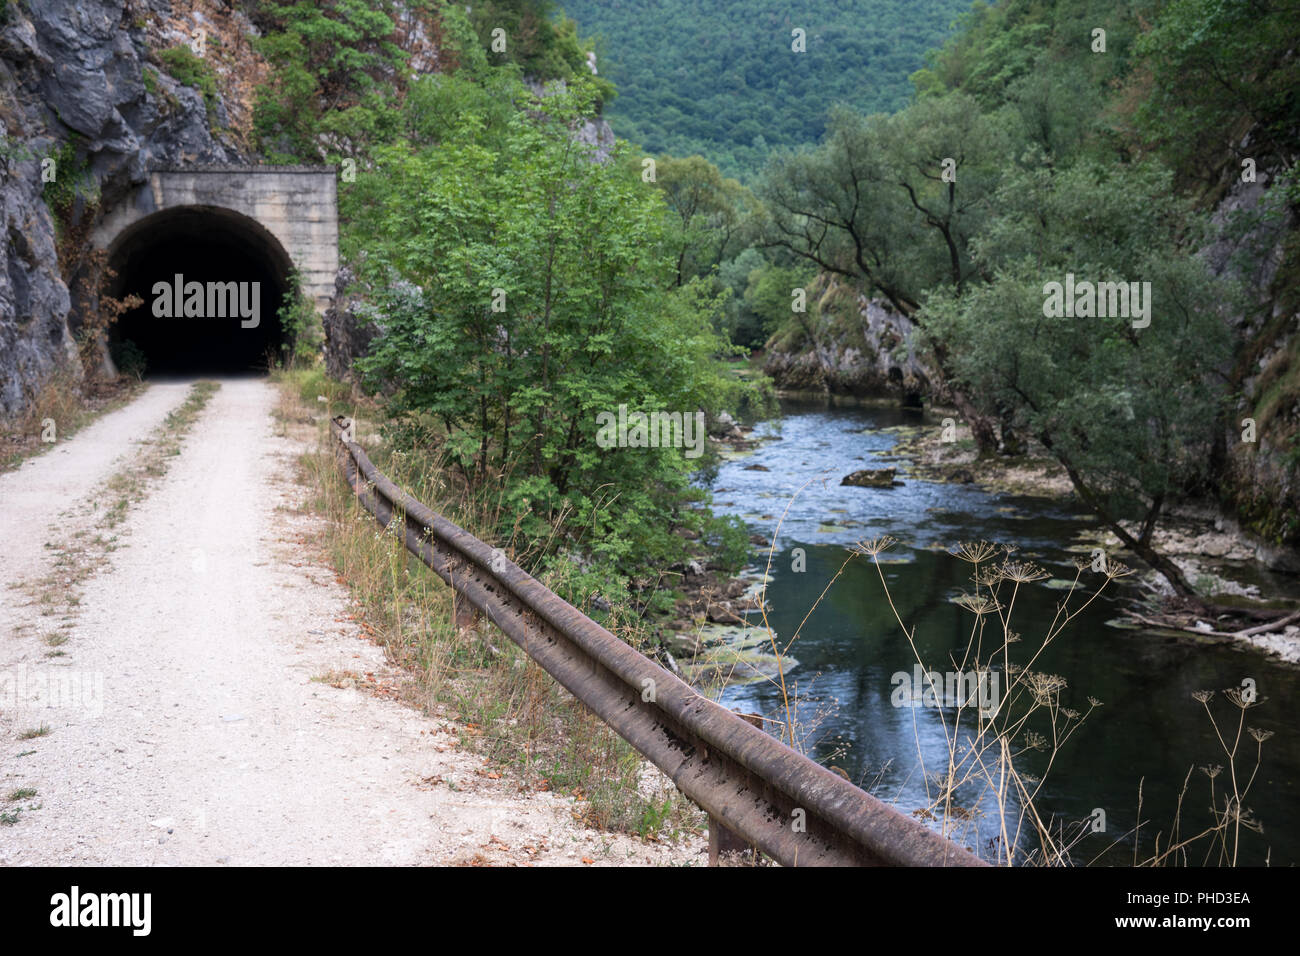 Vally of the River Sana with Railway Tunnel, Bosnia - Stock Image